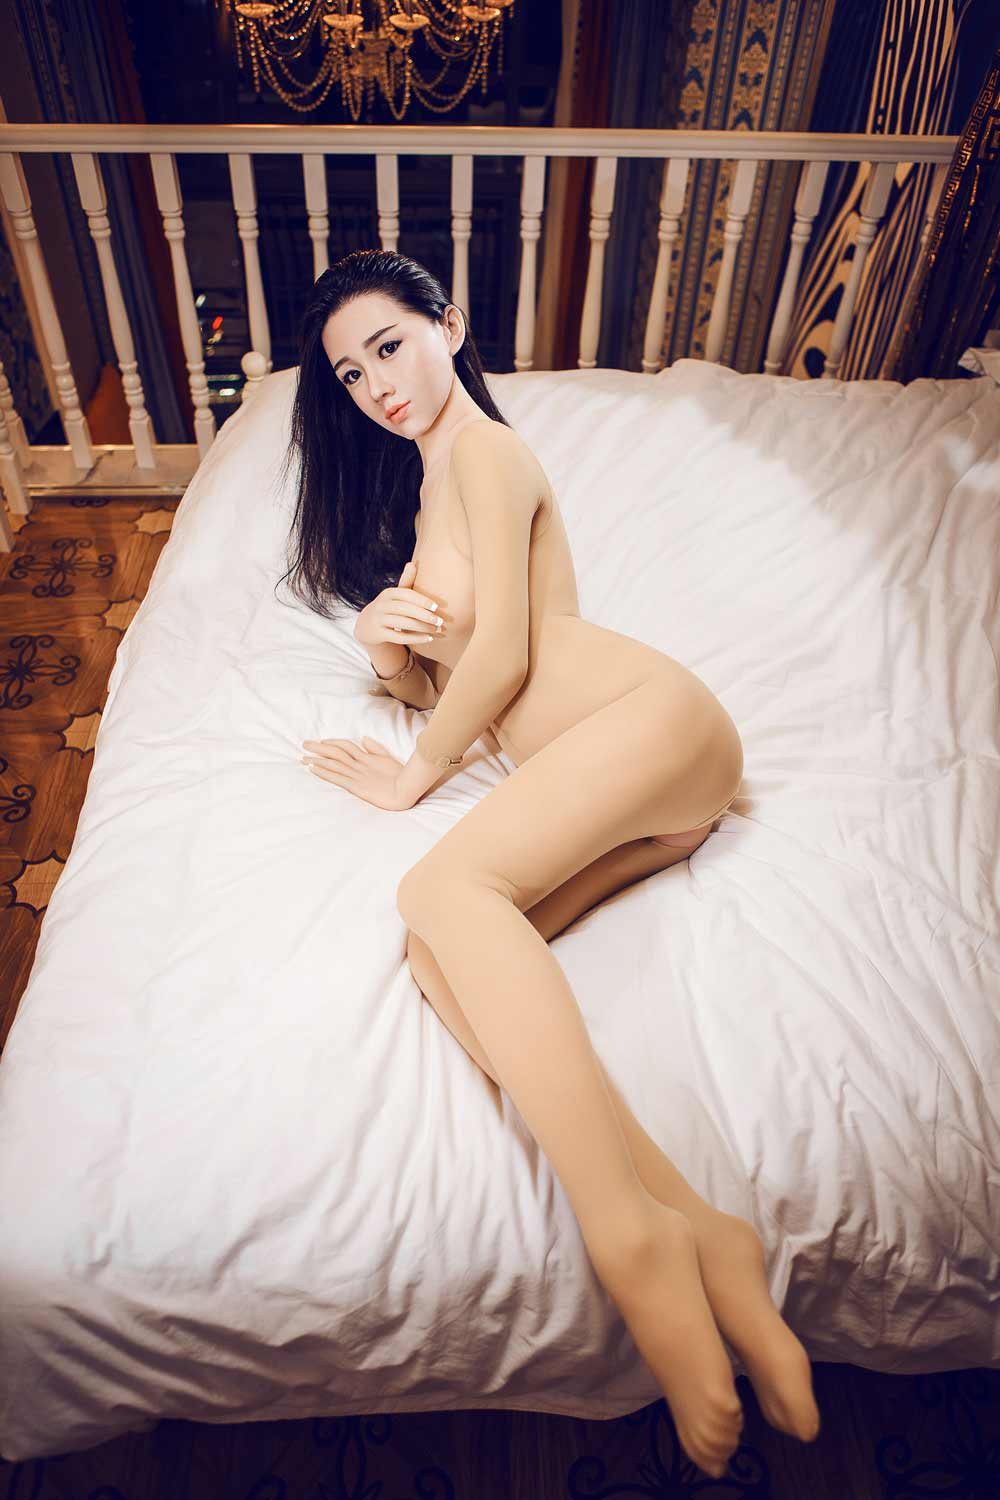 Silicone sex doll lying on the bed with hands covering breasts